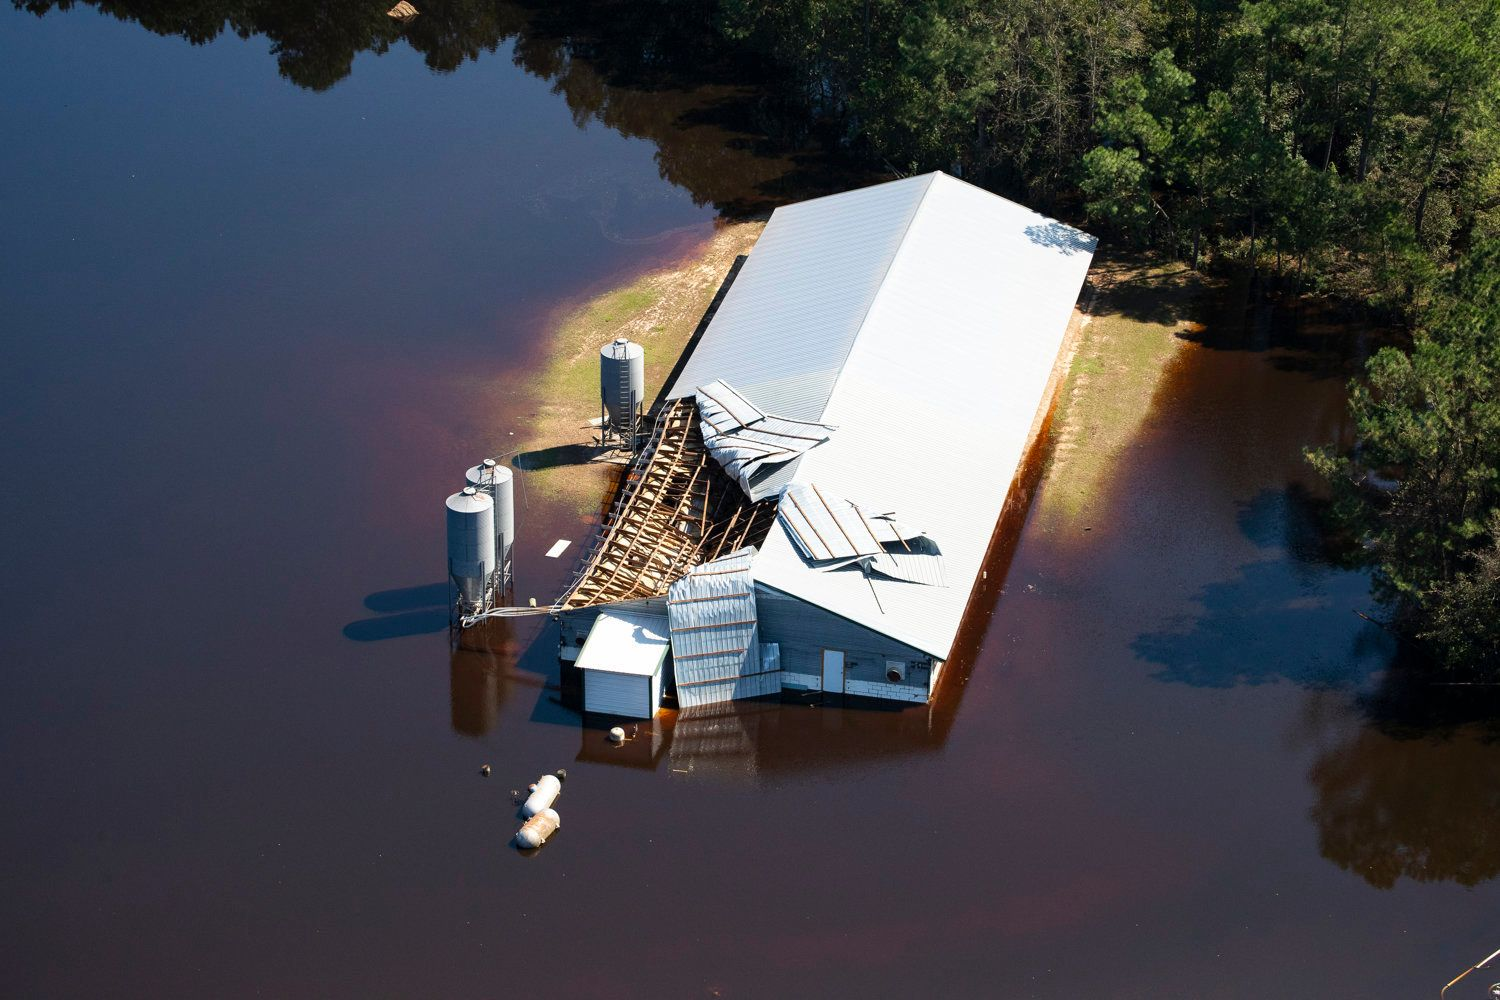 This image provided by Greenpeace shows a damaged structure on a hog farm surrounded by floodwaters in White Oak, North